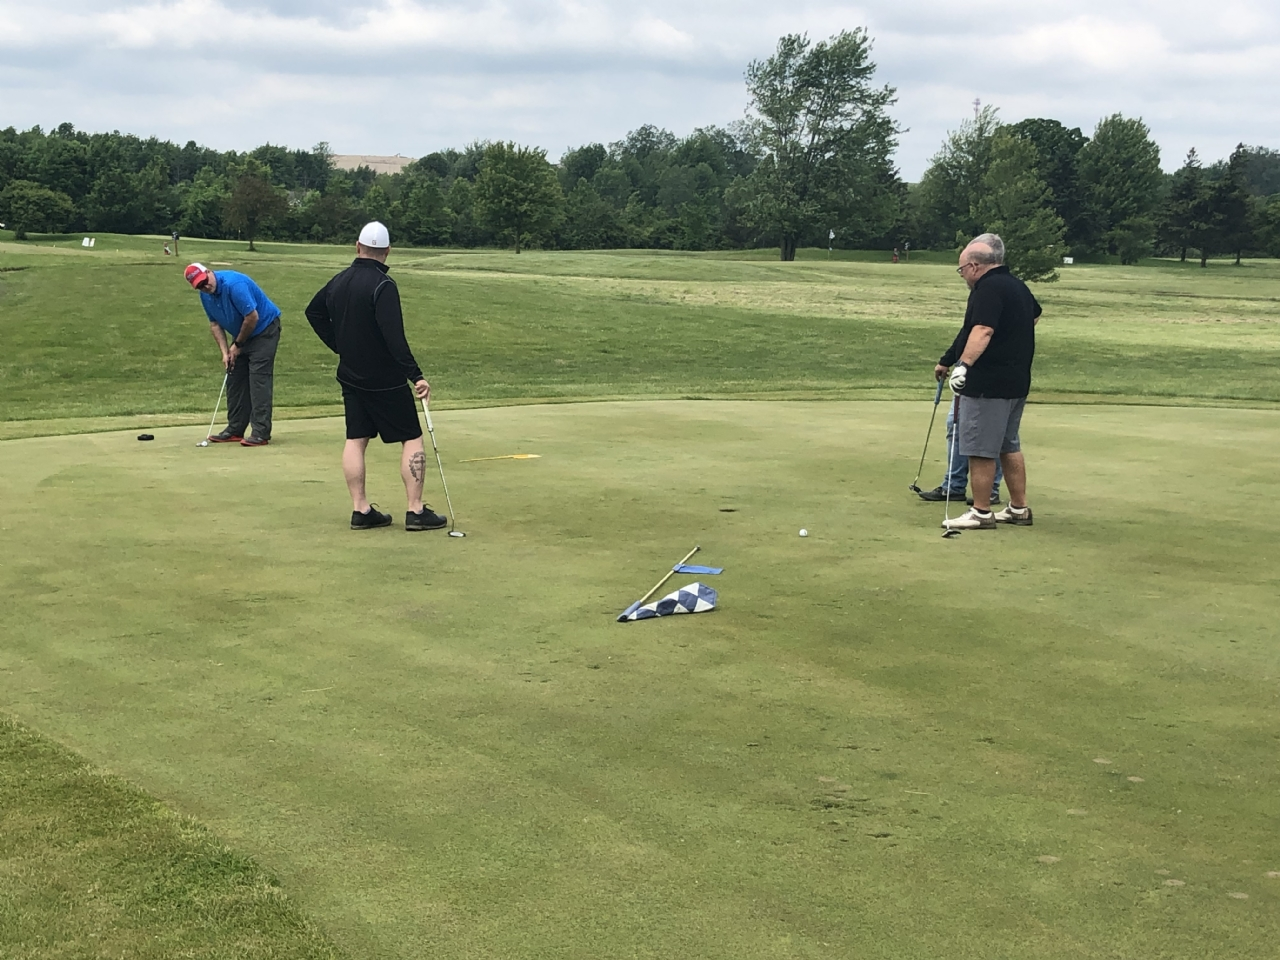 A team putting at the CLOSEST TO THE PIN hole